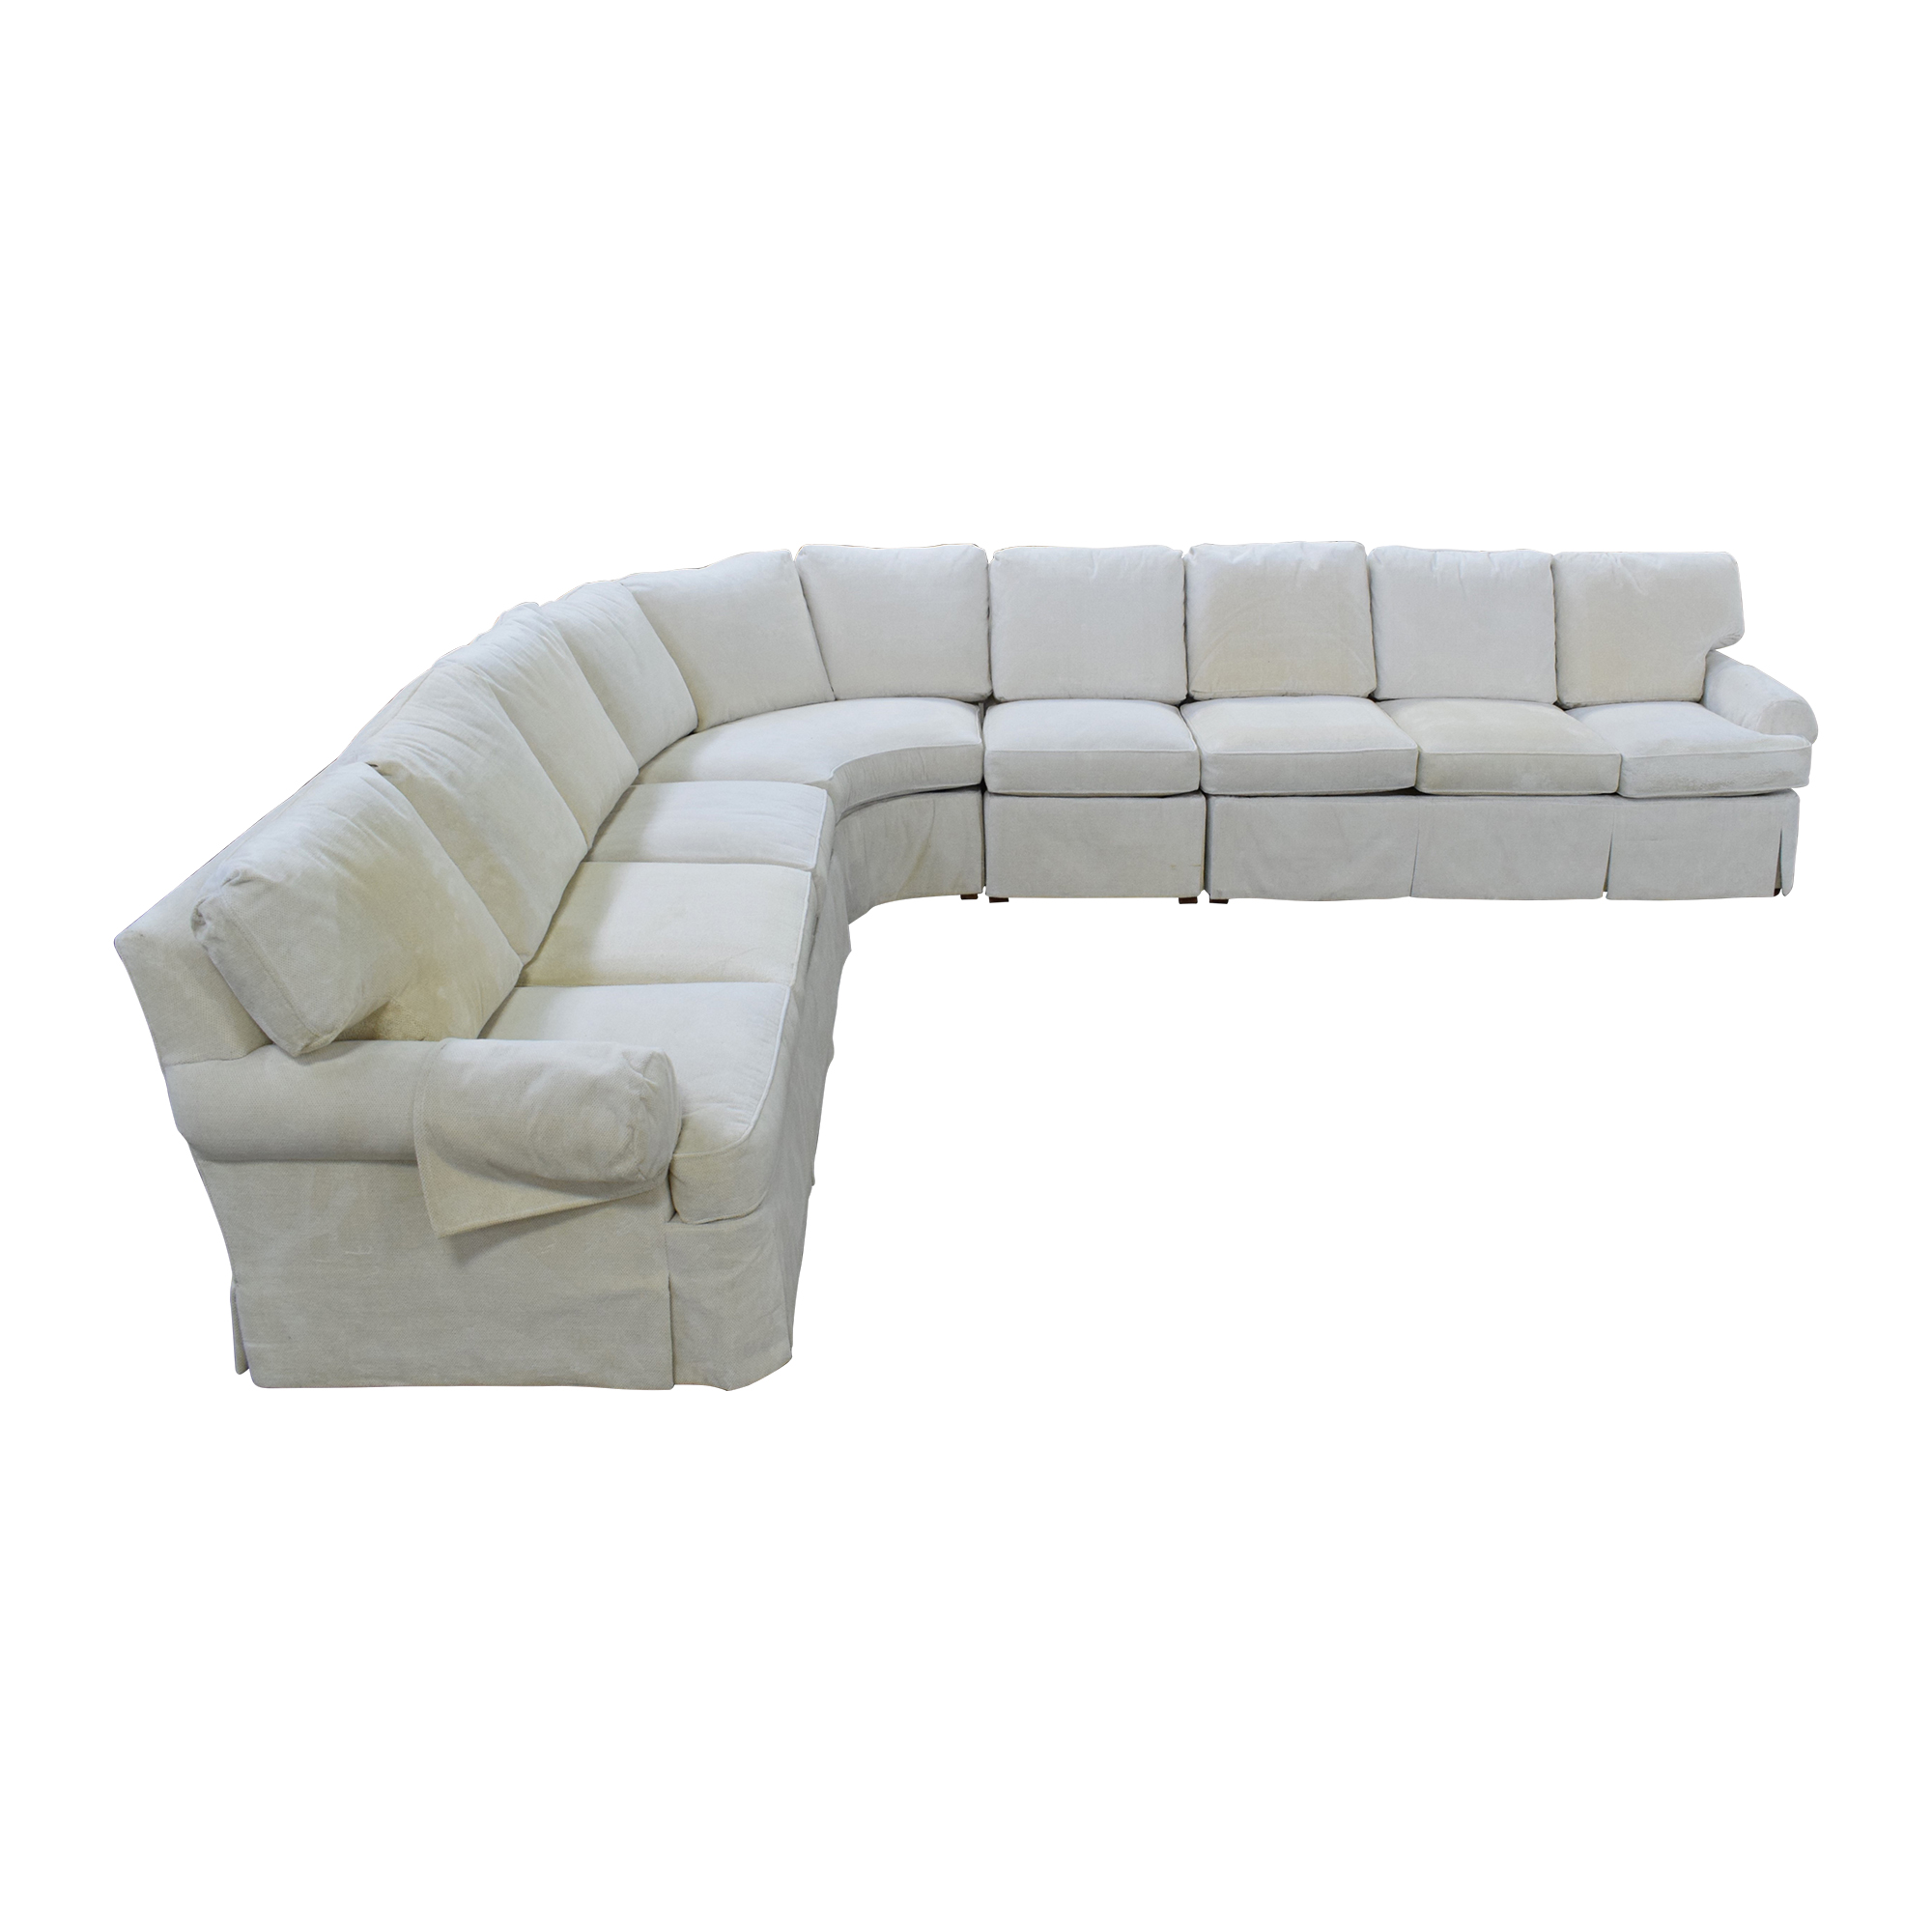 Hickory Chair Hickory Chair Sovereign Curved Sectional Sofa dimensions